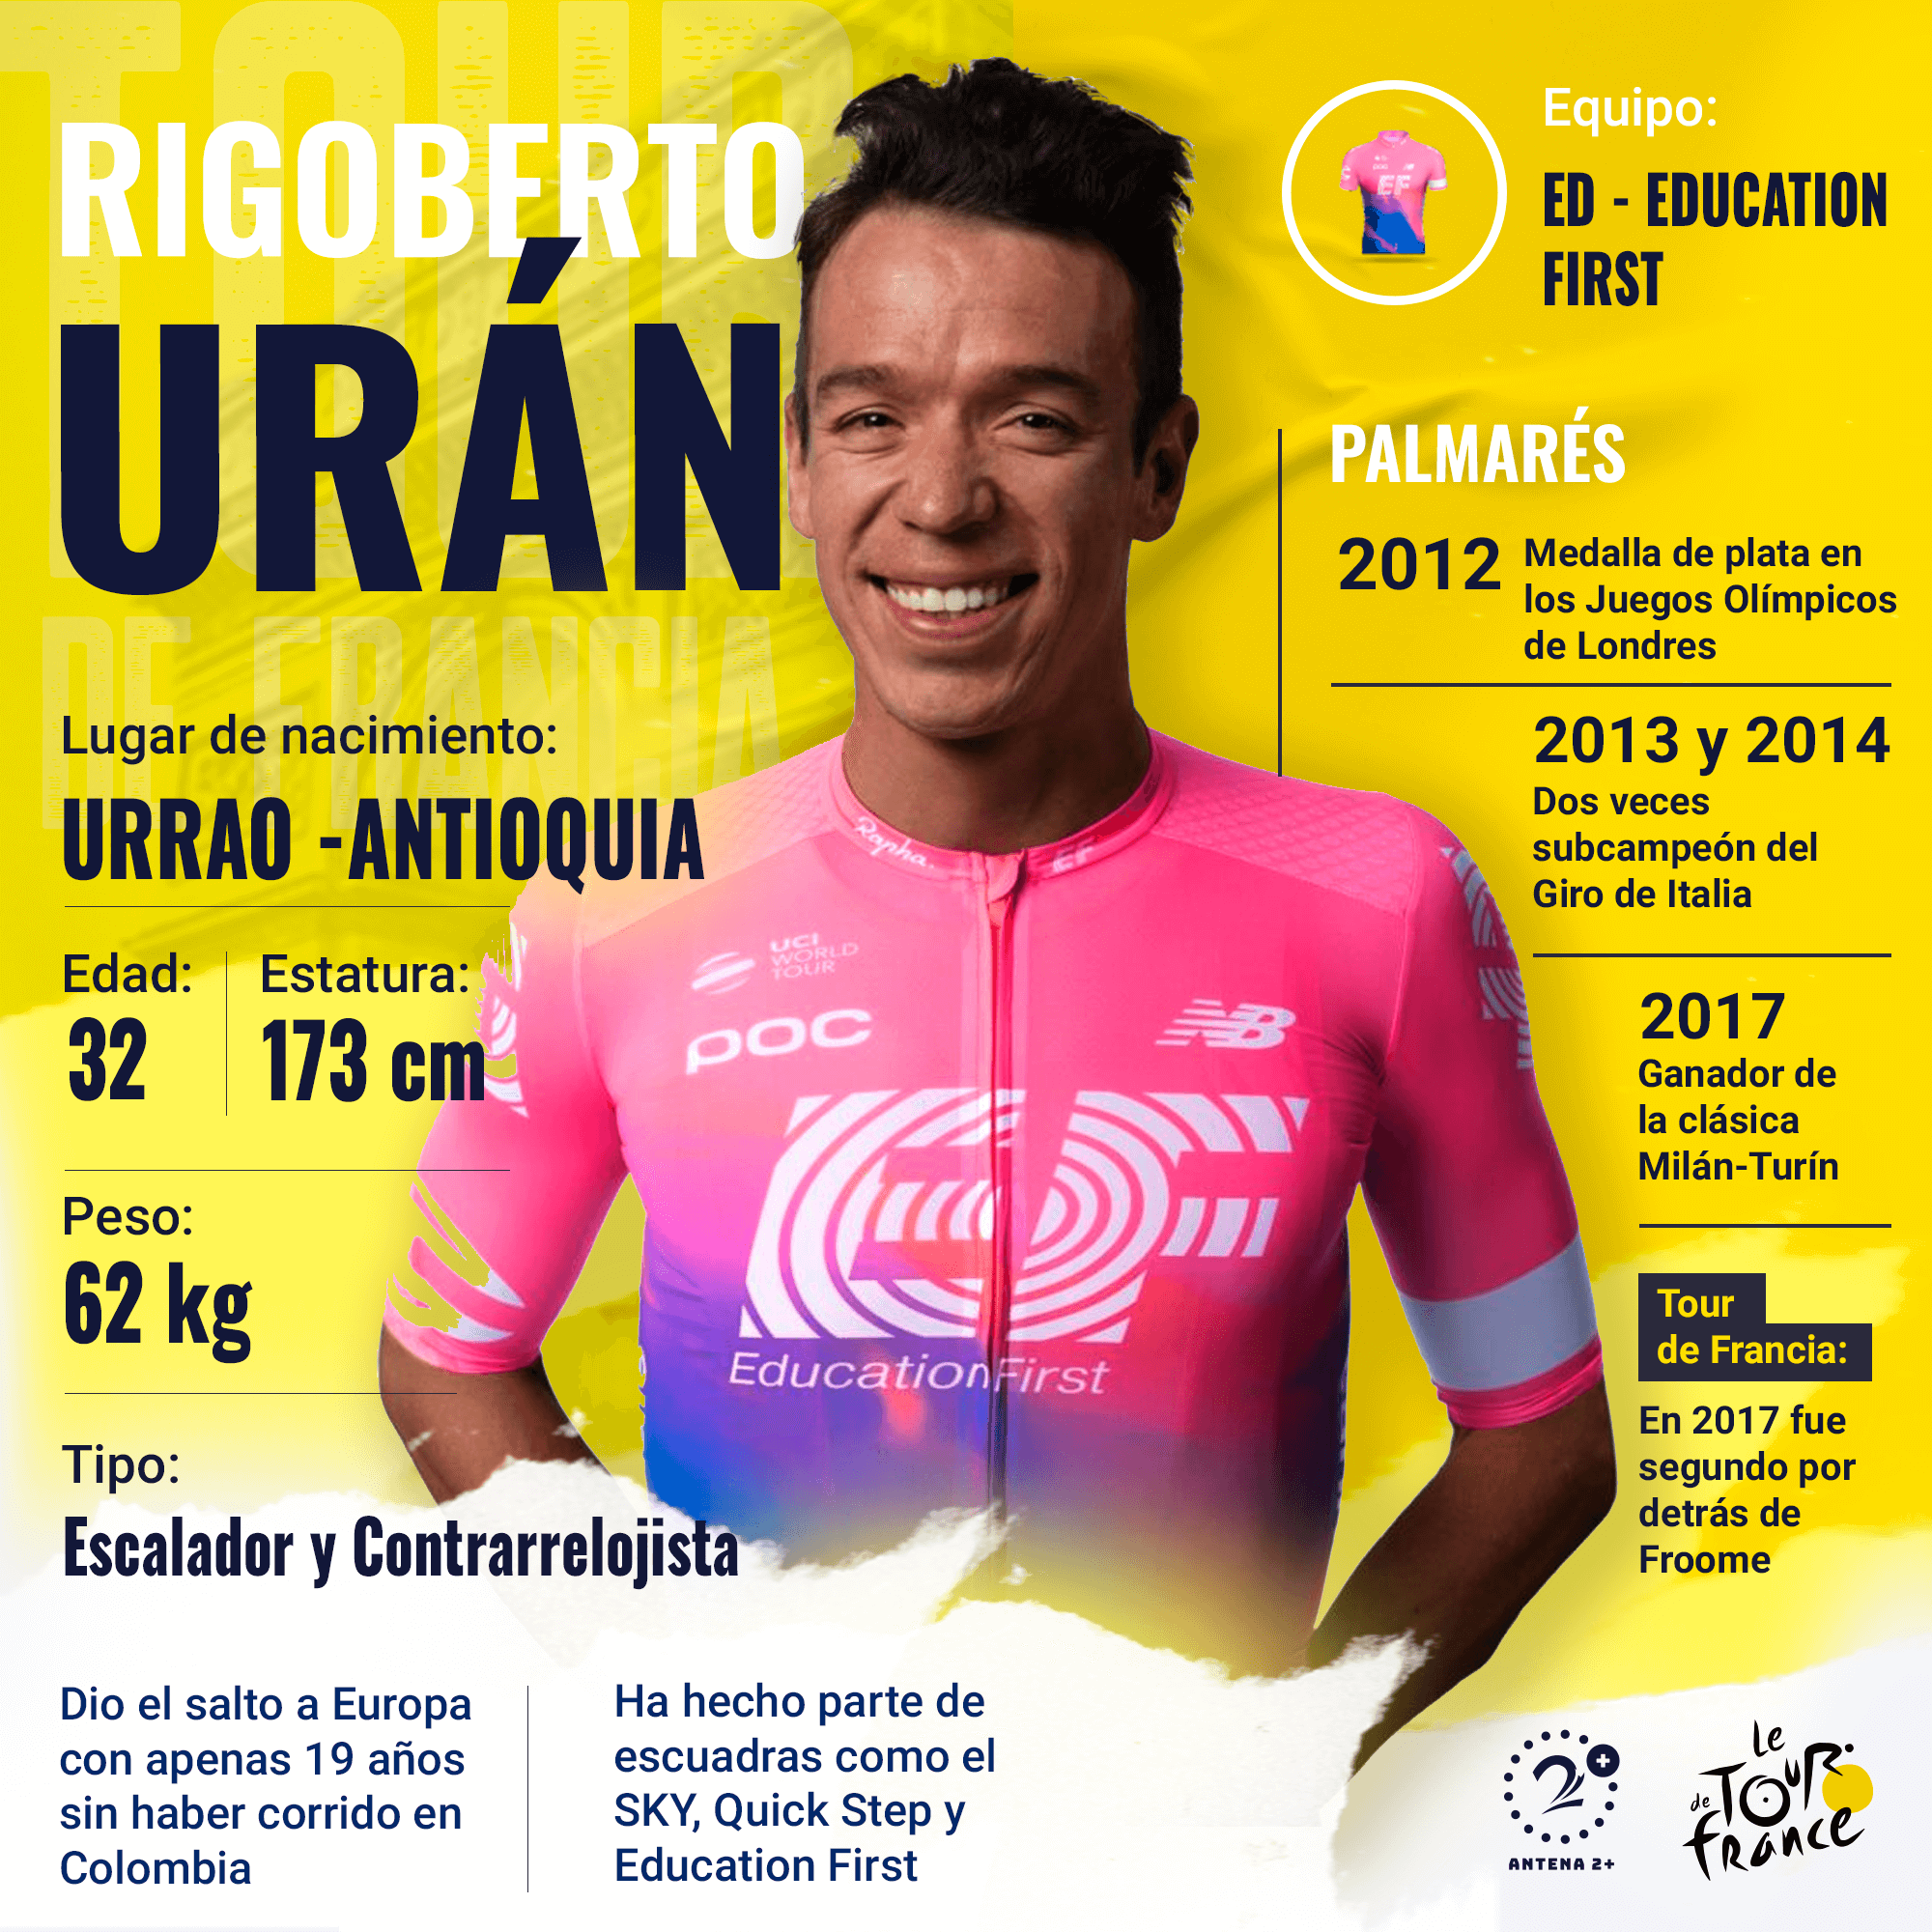 Rigoberto Urán, ciclista del Education First en el Tour de Francia 2019.